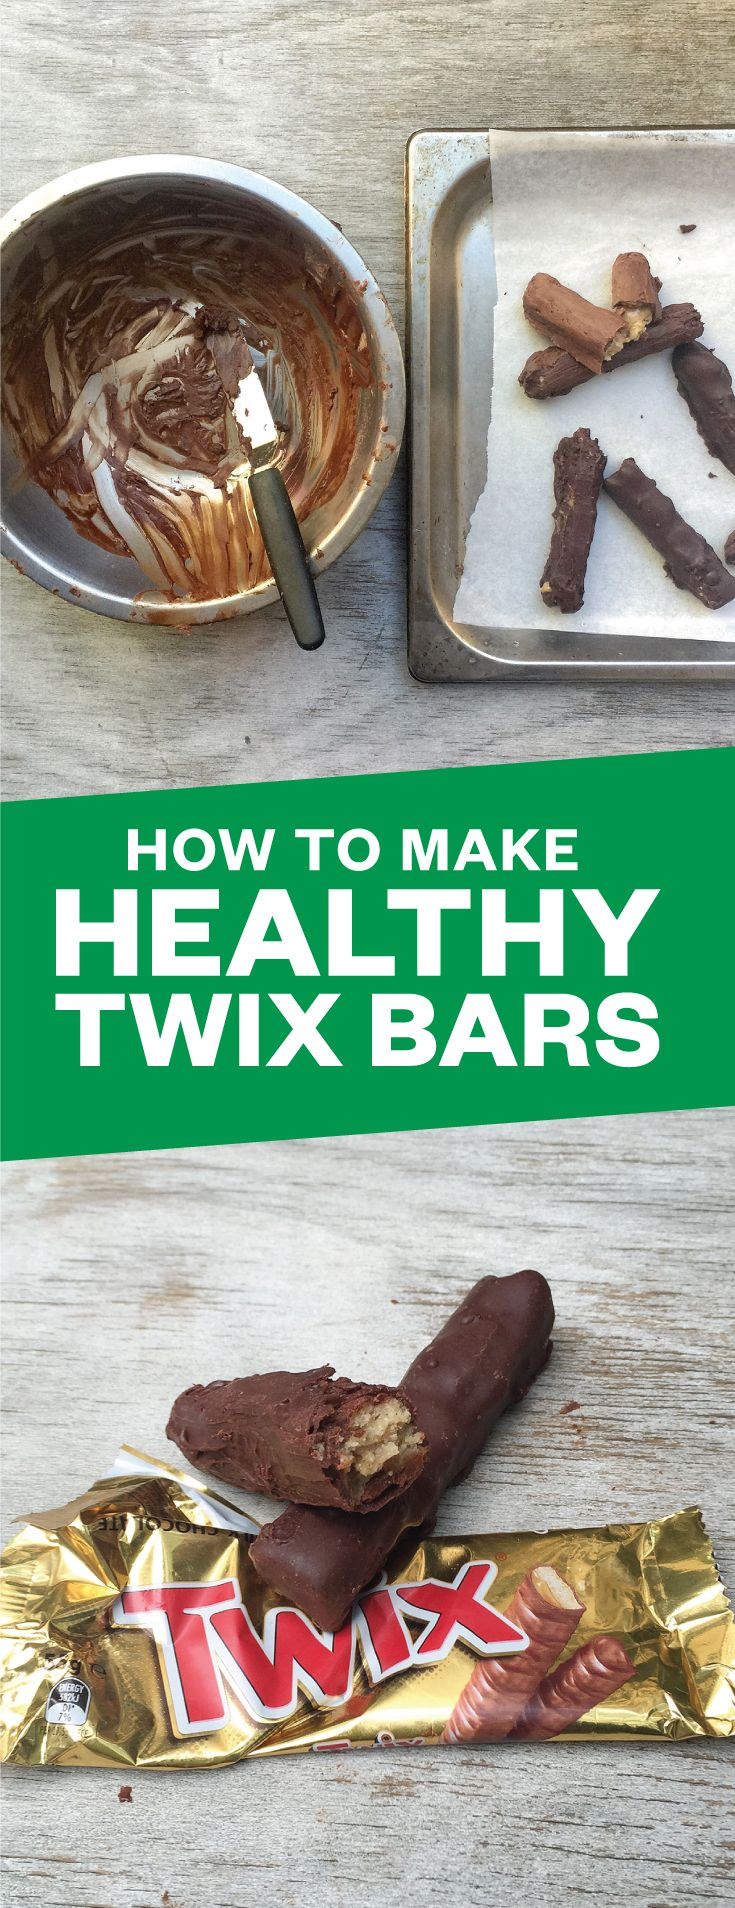 Healthy dessert recipes can be both nutritious and delicious. These healthy Twix bar recipes are full of superfood ingredients like coconut and cashews. They're one of my personal favorite recipes, but we also have lots of other healthy candy options to try. Let us know what you think by leaving a comment below!